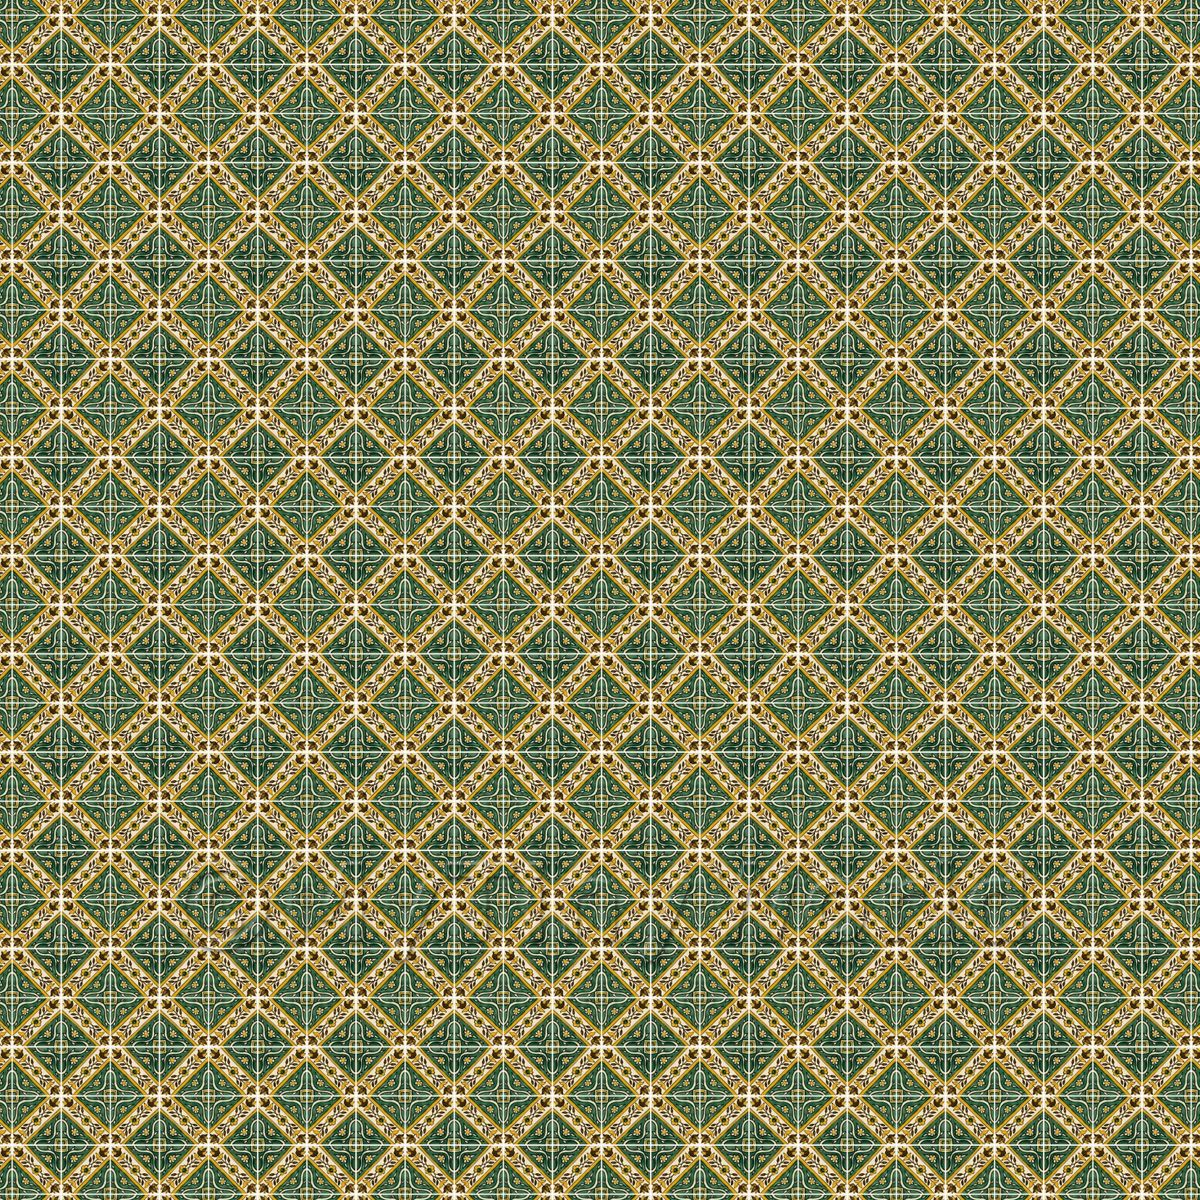 1:48th Green Star With Flower Border Tile Sheet With White Grout